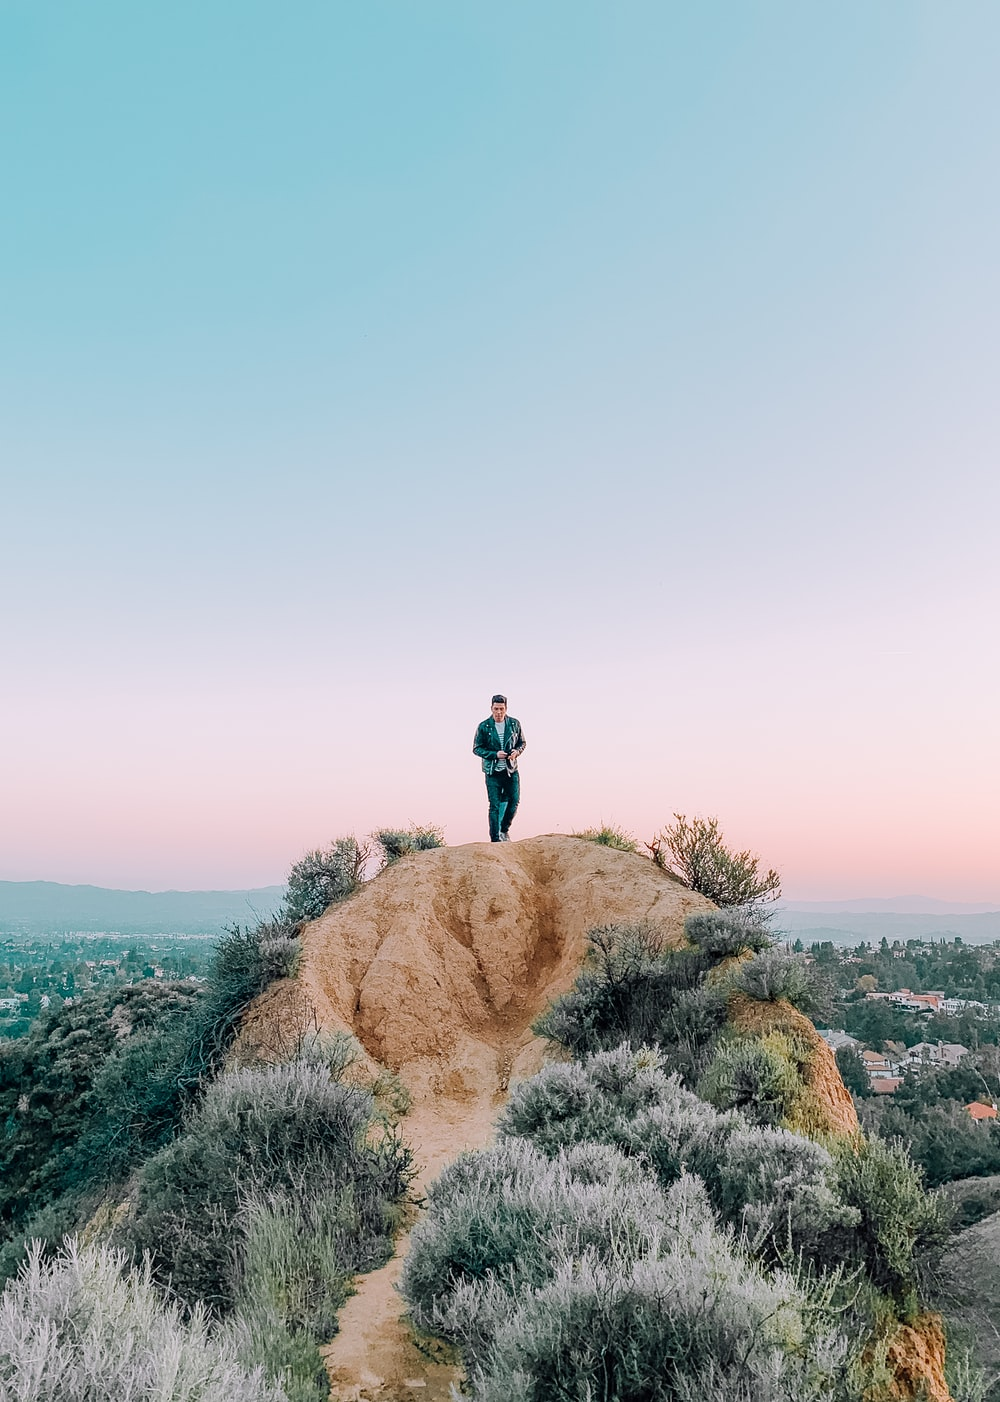 man standing on hill during daytime